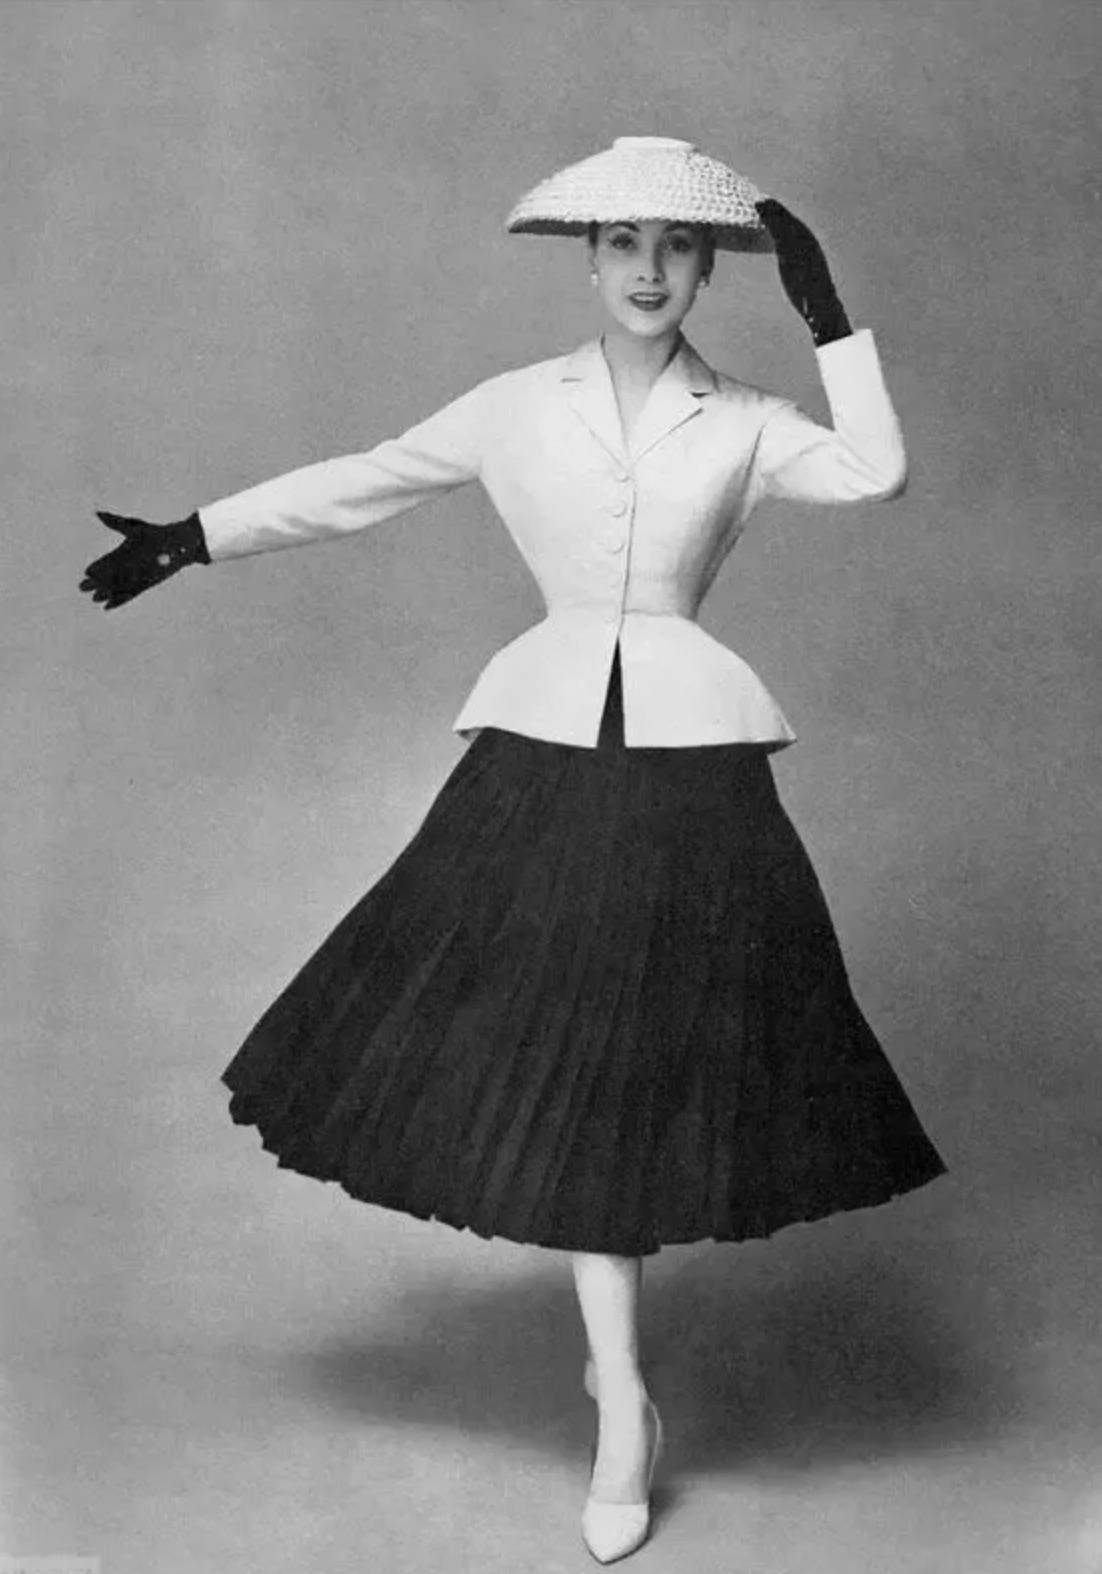 Dior's new look came in 1947